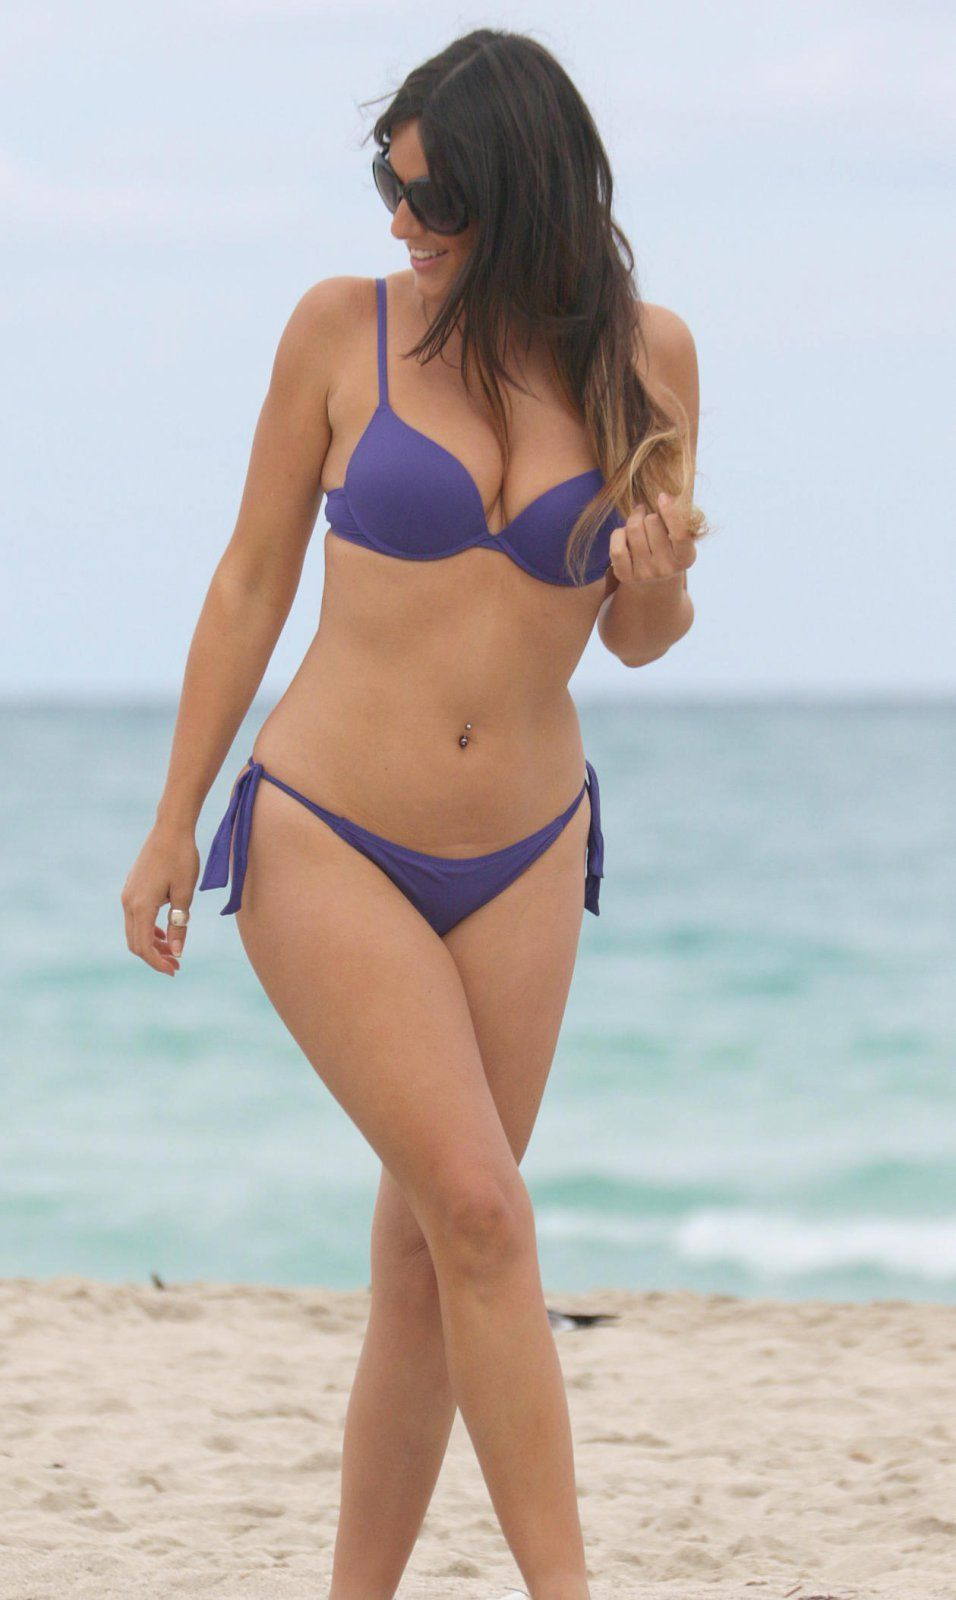 Claudia-Romani-in-Purple-Bikini-in-Miami-Beach-Kanoni-2